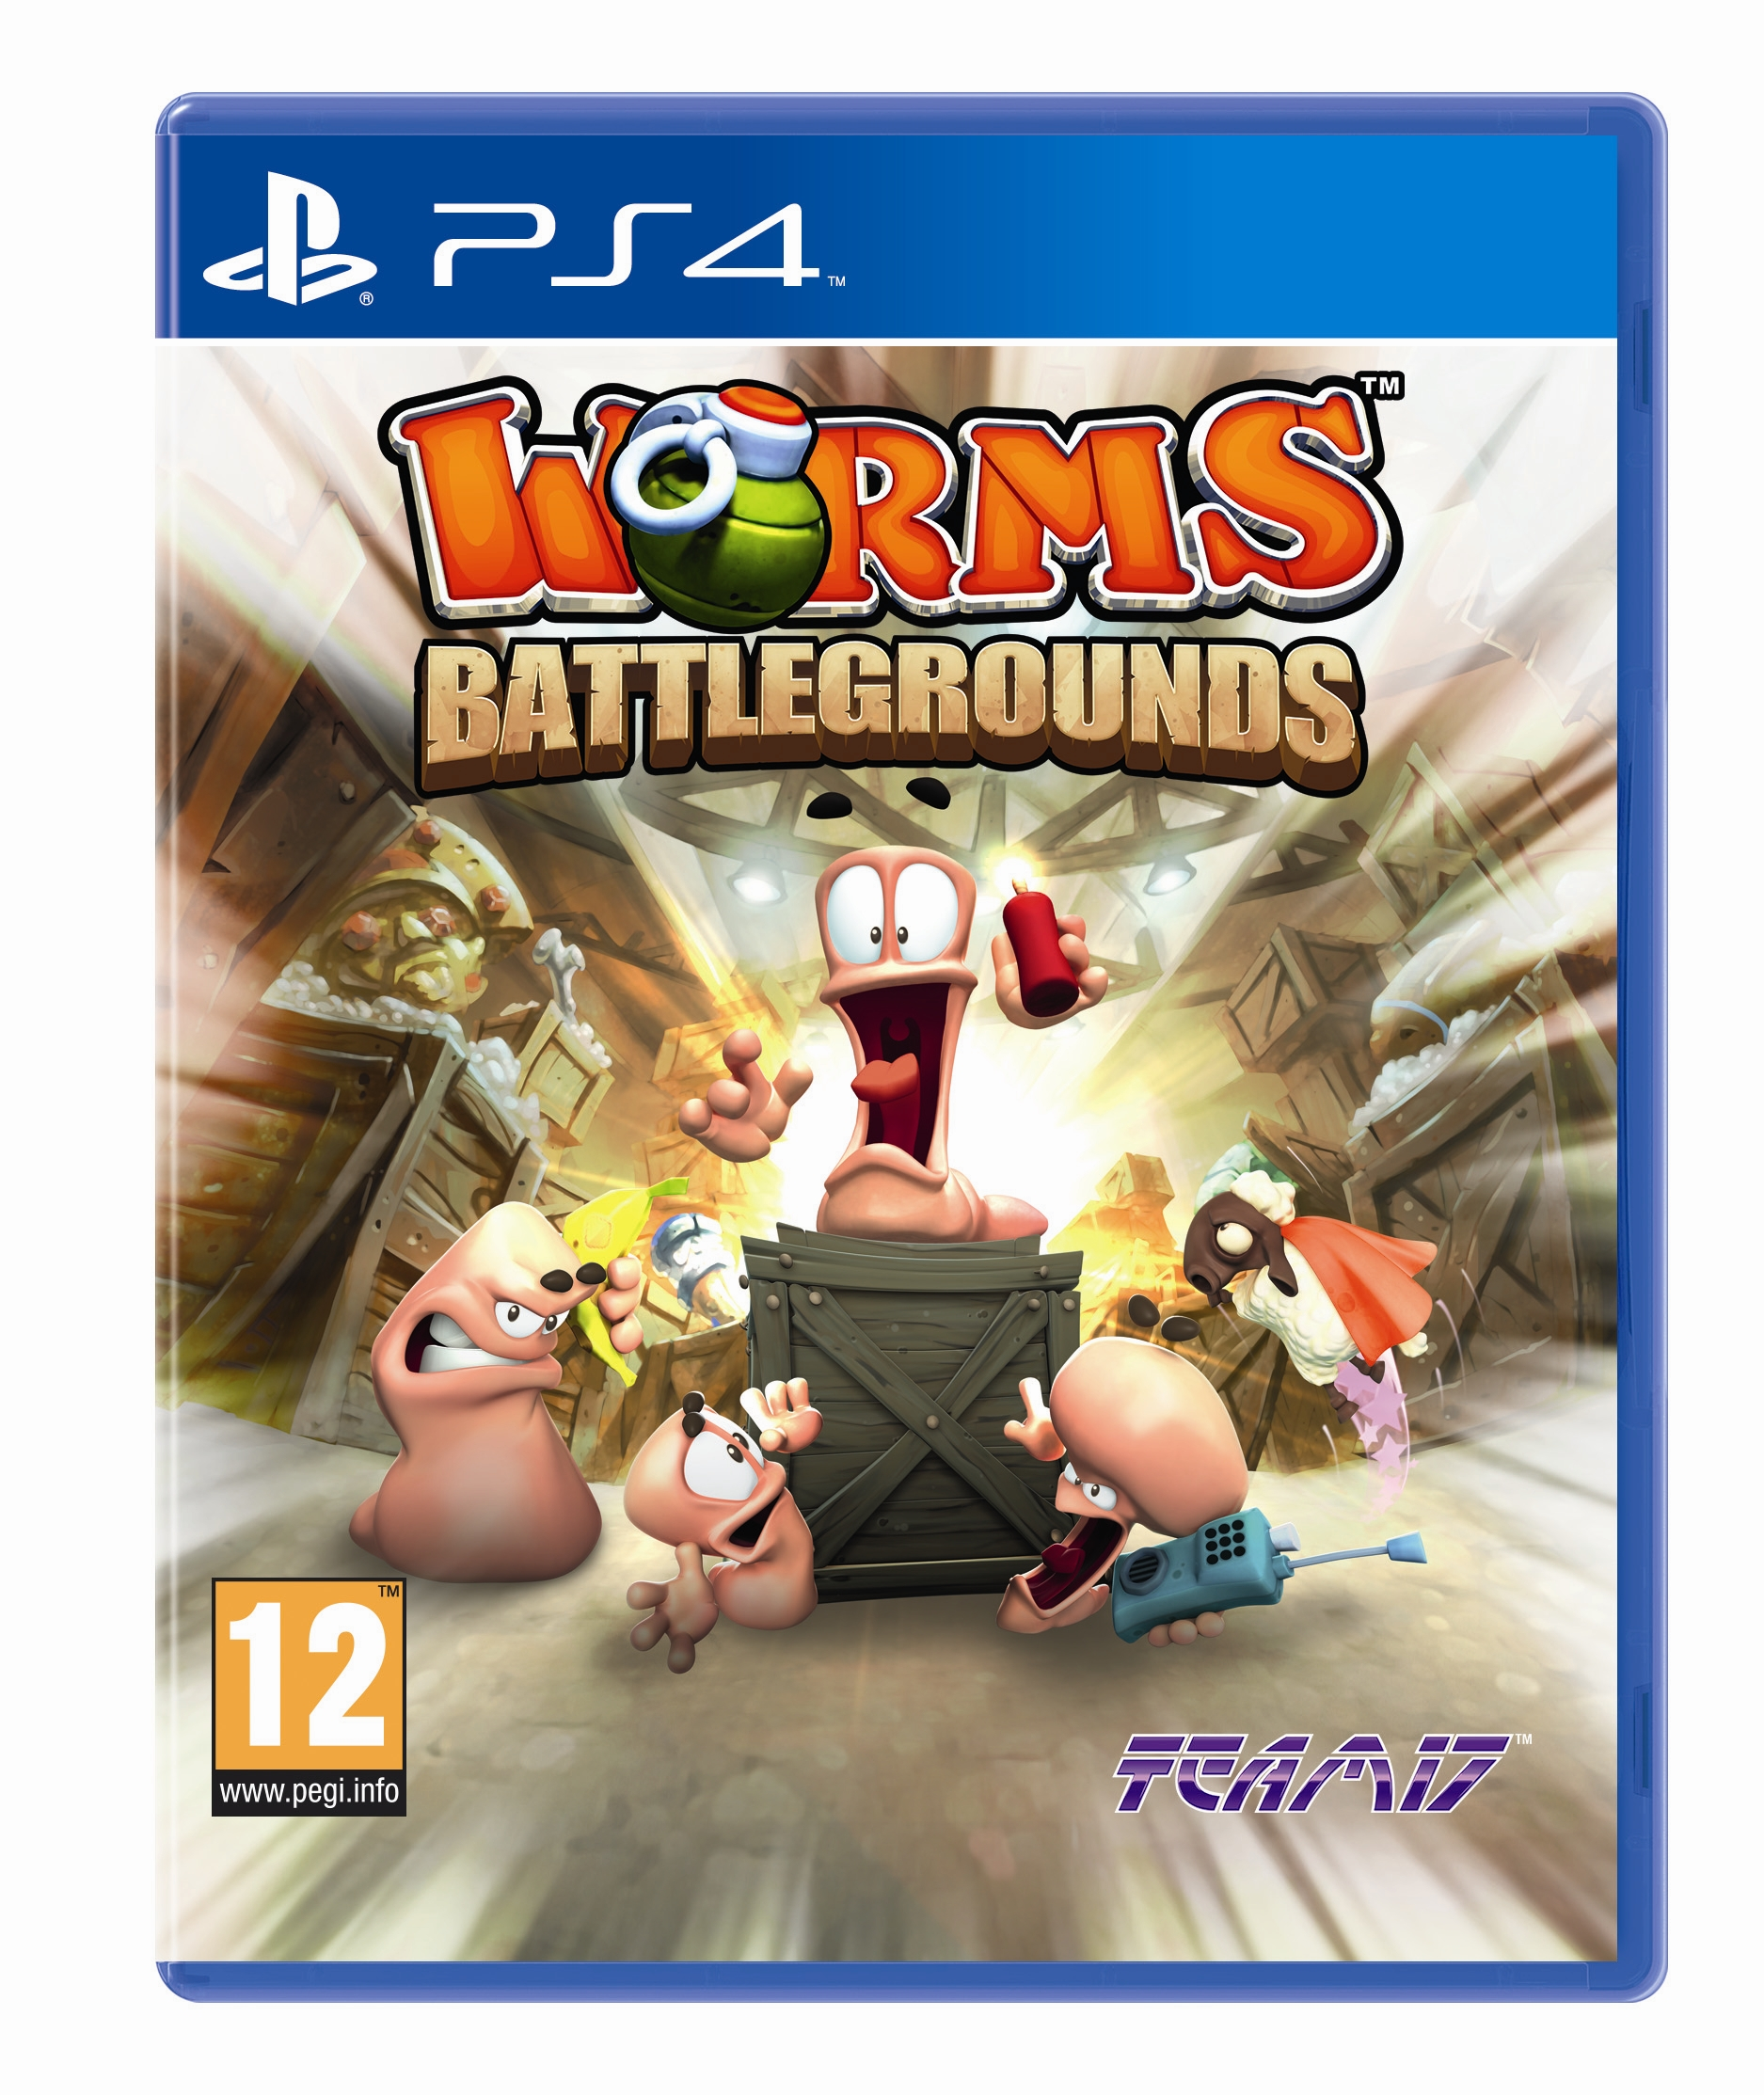 worms-battlegrounds-2d-packshot-ps4-pegi